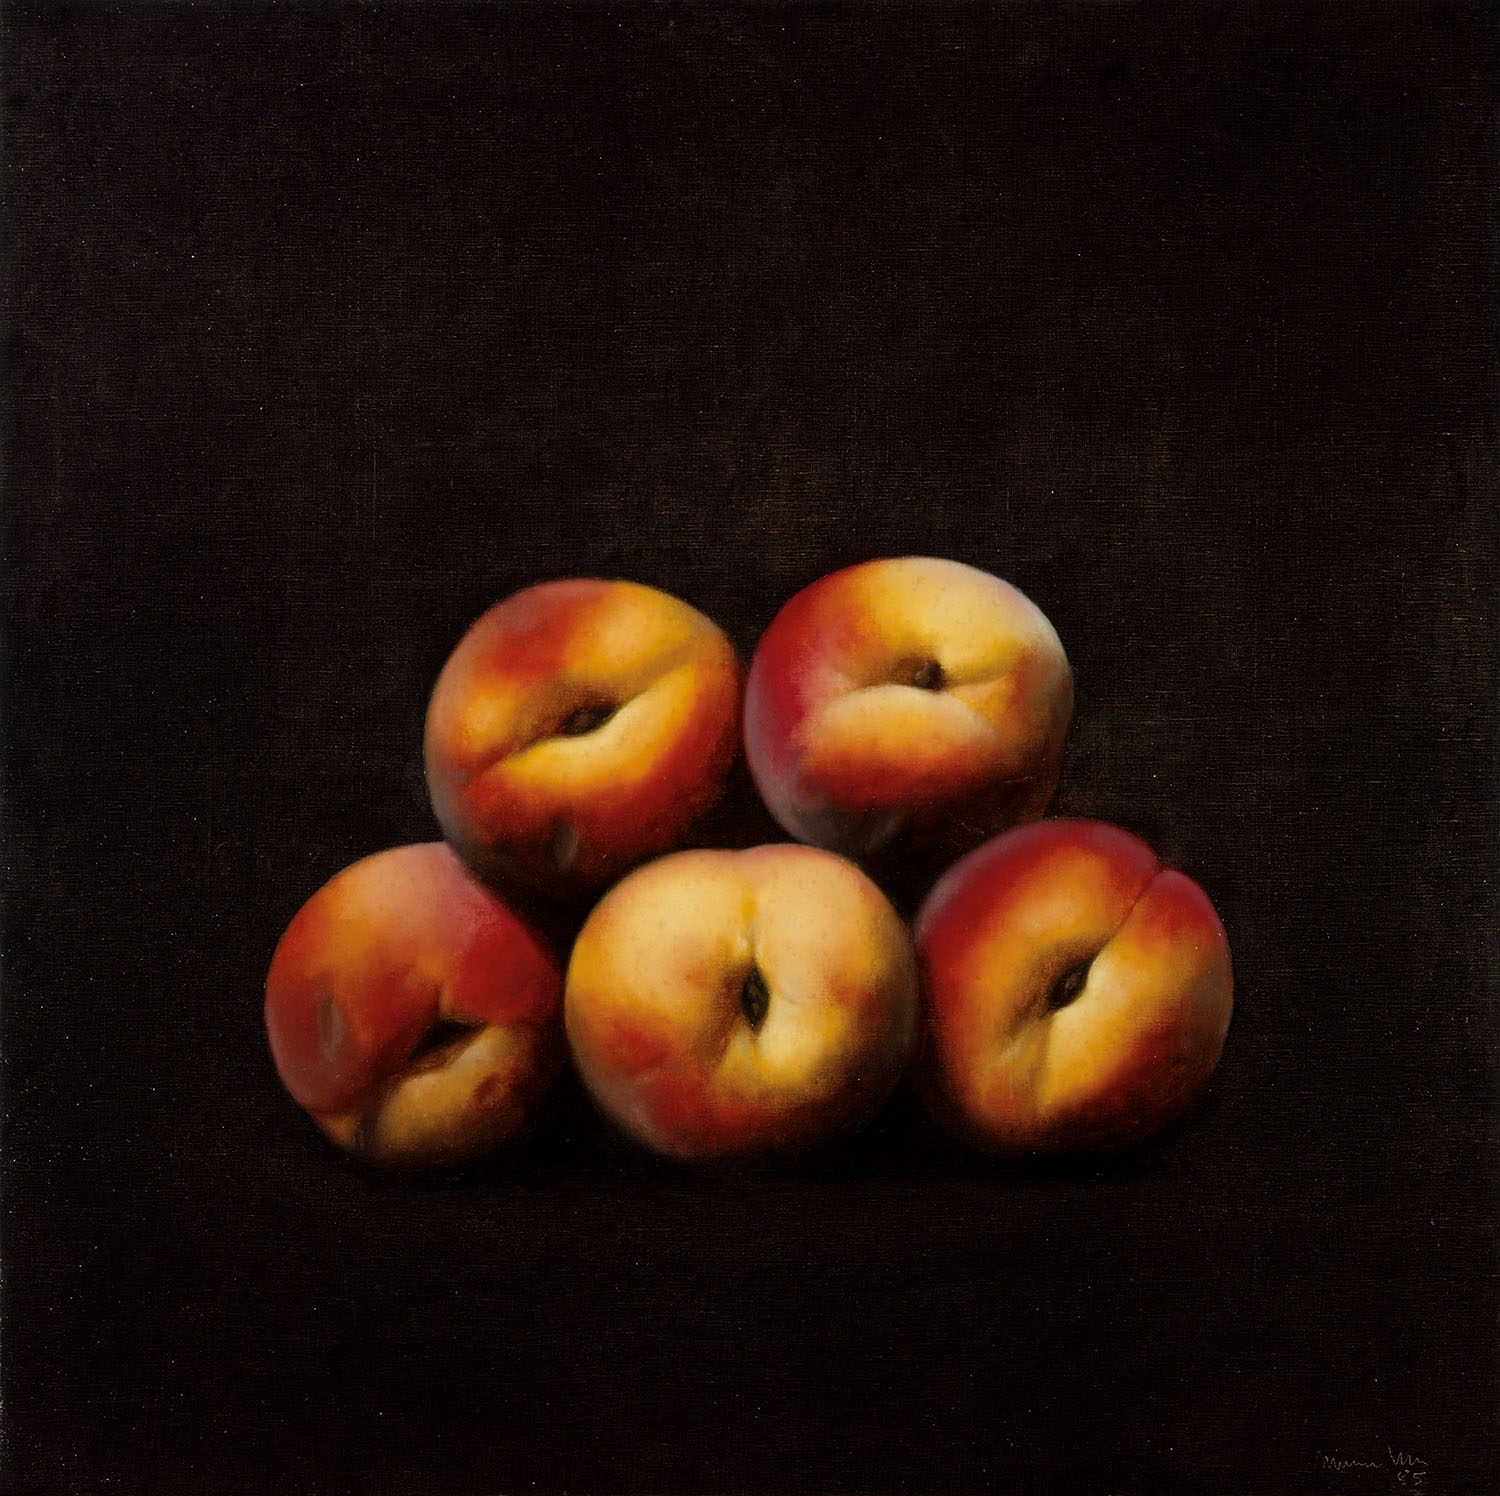 Fruits, 1985, oil on canvas, cm 110 x 110